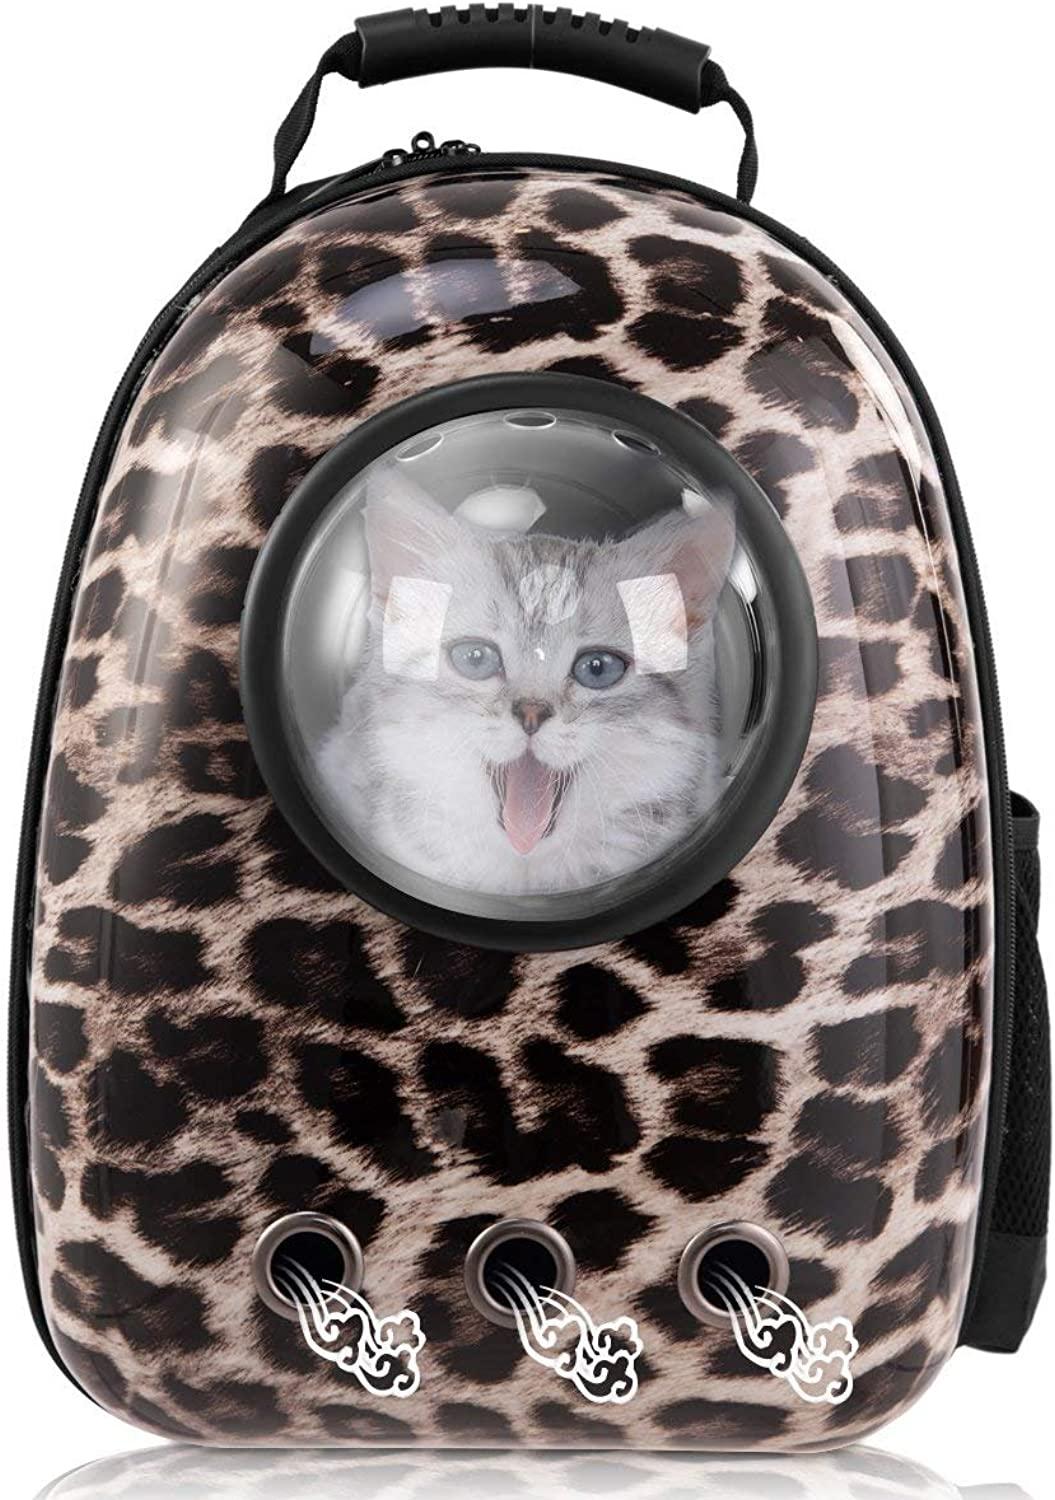 Pet Carrier Travel Bag,TEMACOO Cat Space Capsule Backpack Dog Bubble Traveler Knapsack Multiple Air Vents Breathable Backpack Portable Outside Handbag Fit Puppys Kitties Petite Animals (Leopard Print)